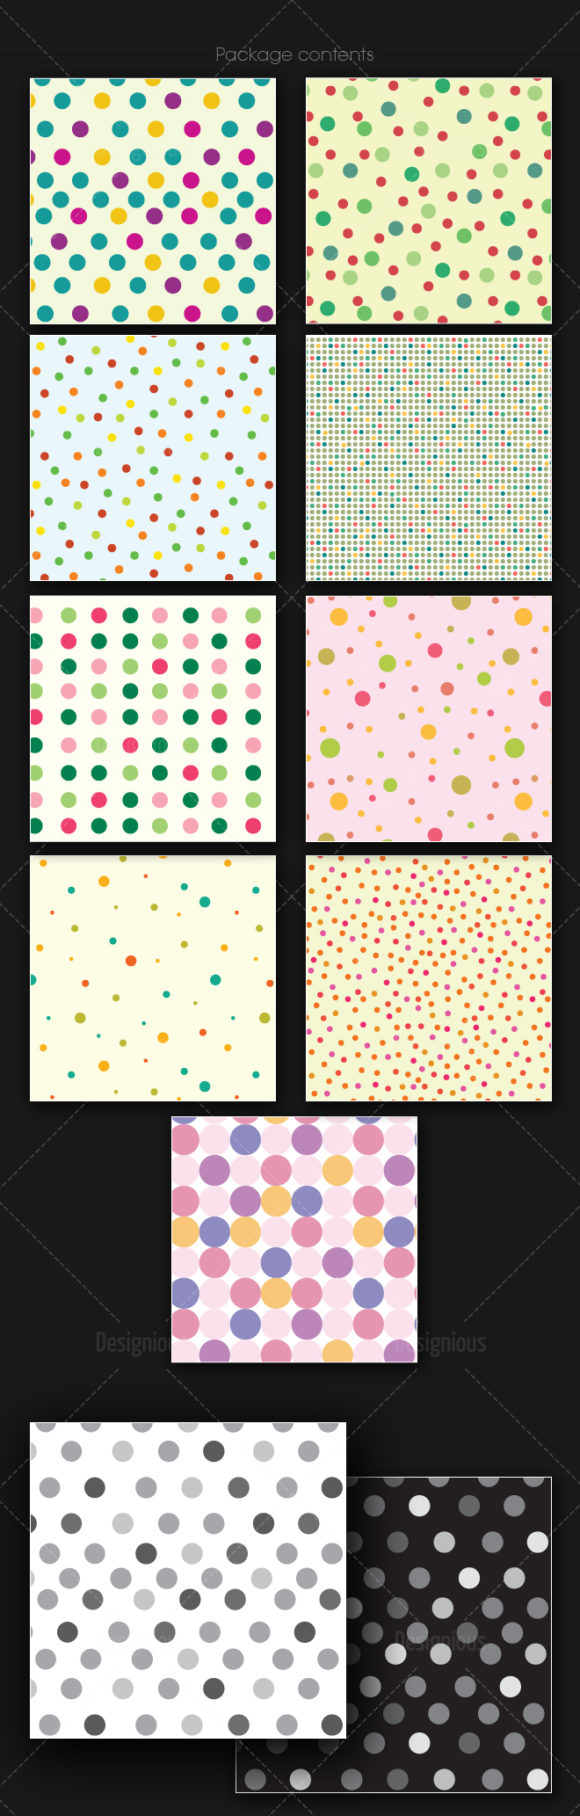 Seamless Patterns Vector Pack 166 products designious vector seamless 166 large